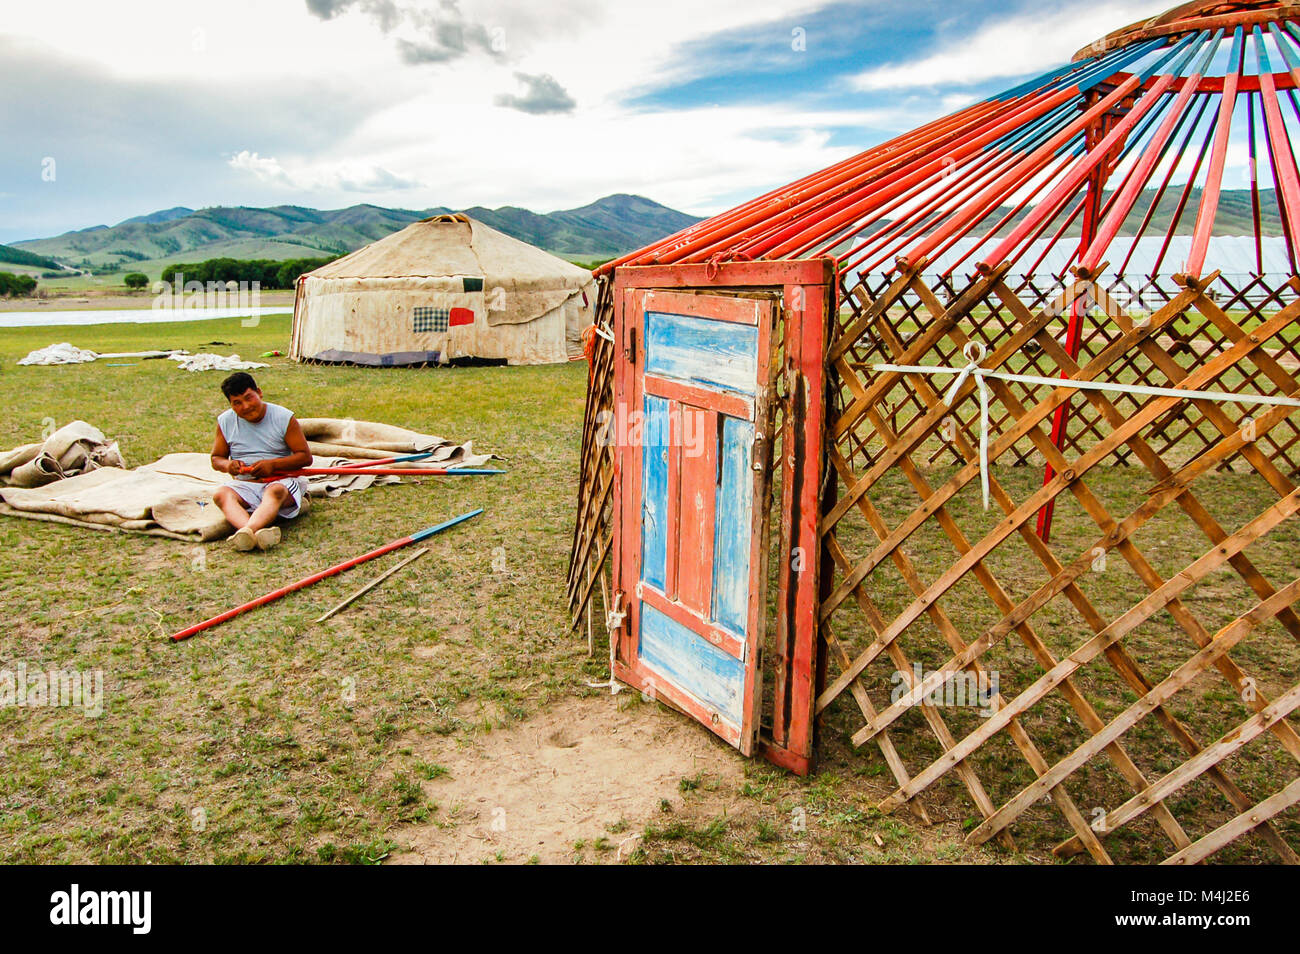 Khutag Ondor, Central Mongolia - July 17, 2010: Nomad constructs a yurt, called a ger, on Central Mongolian steppe - Stock Image